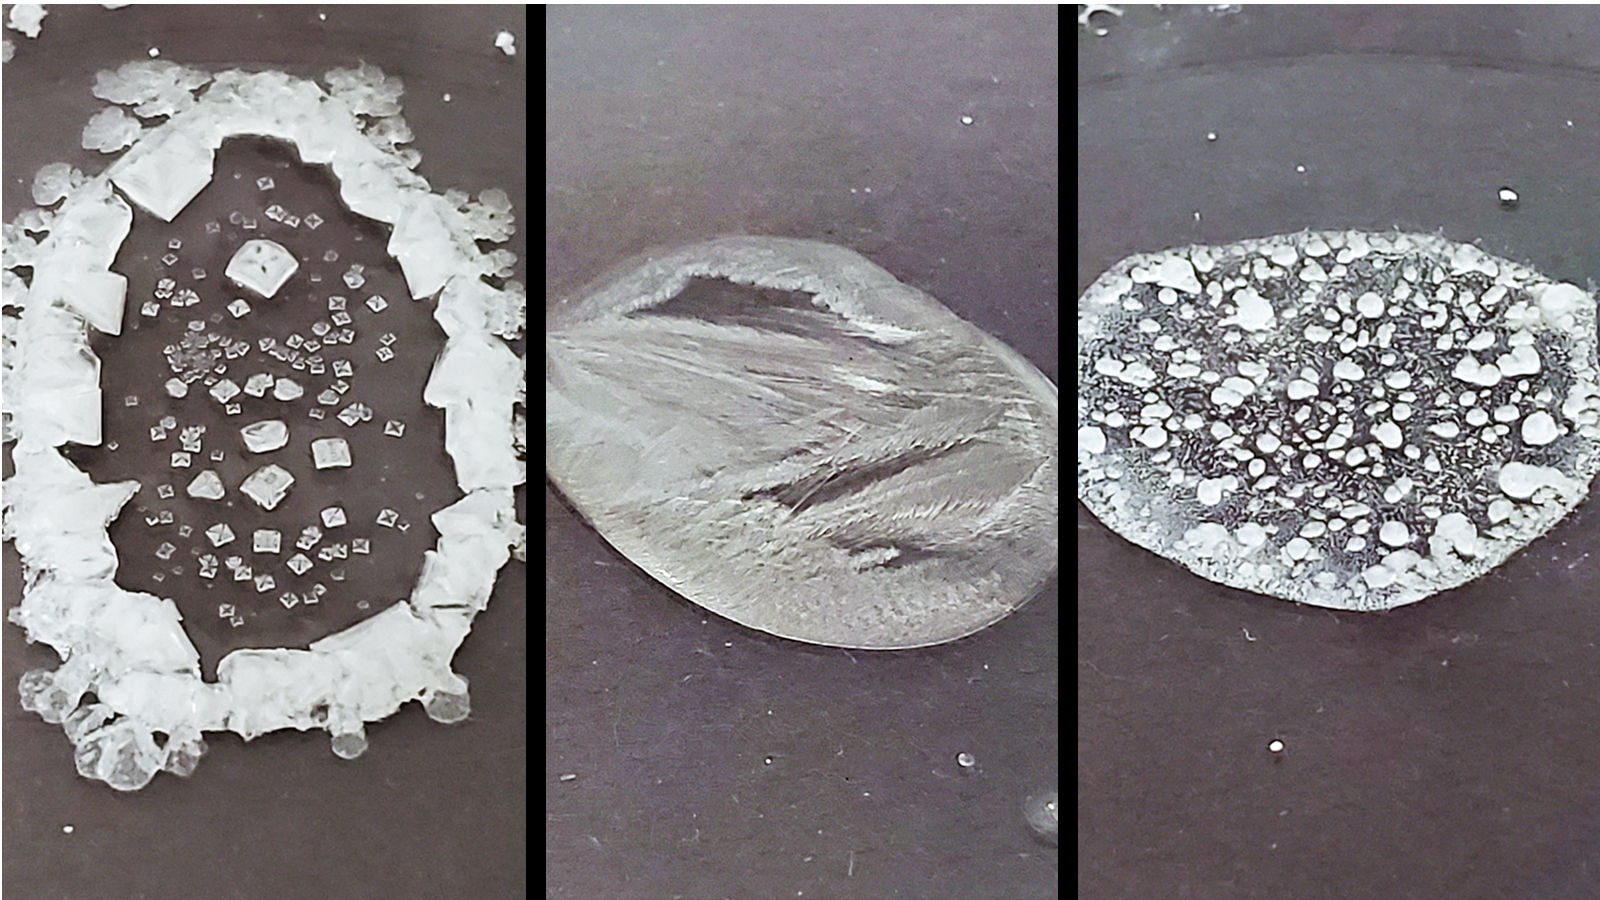 Three images showing examples of dried solutions.